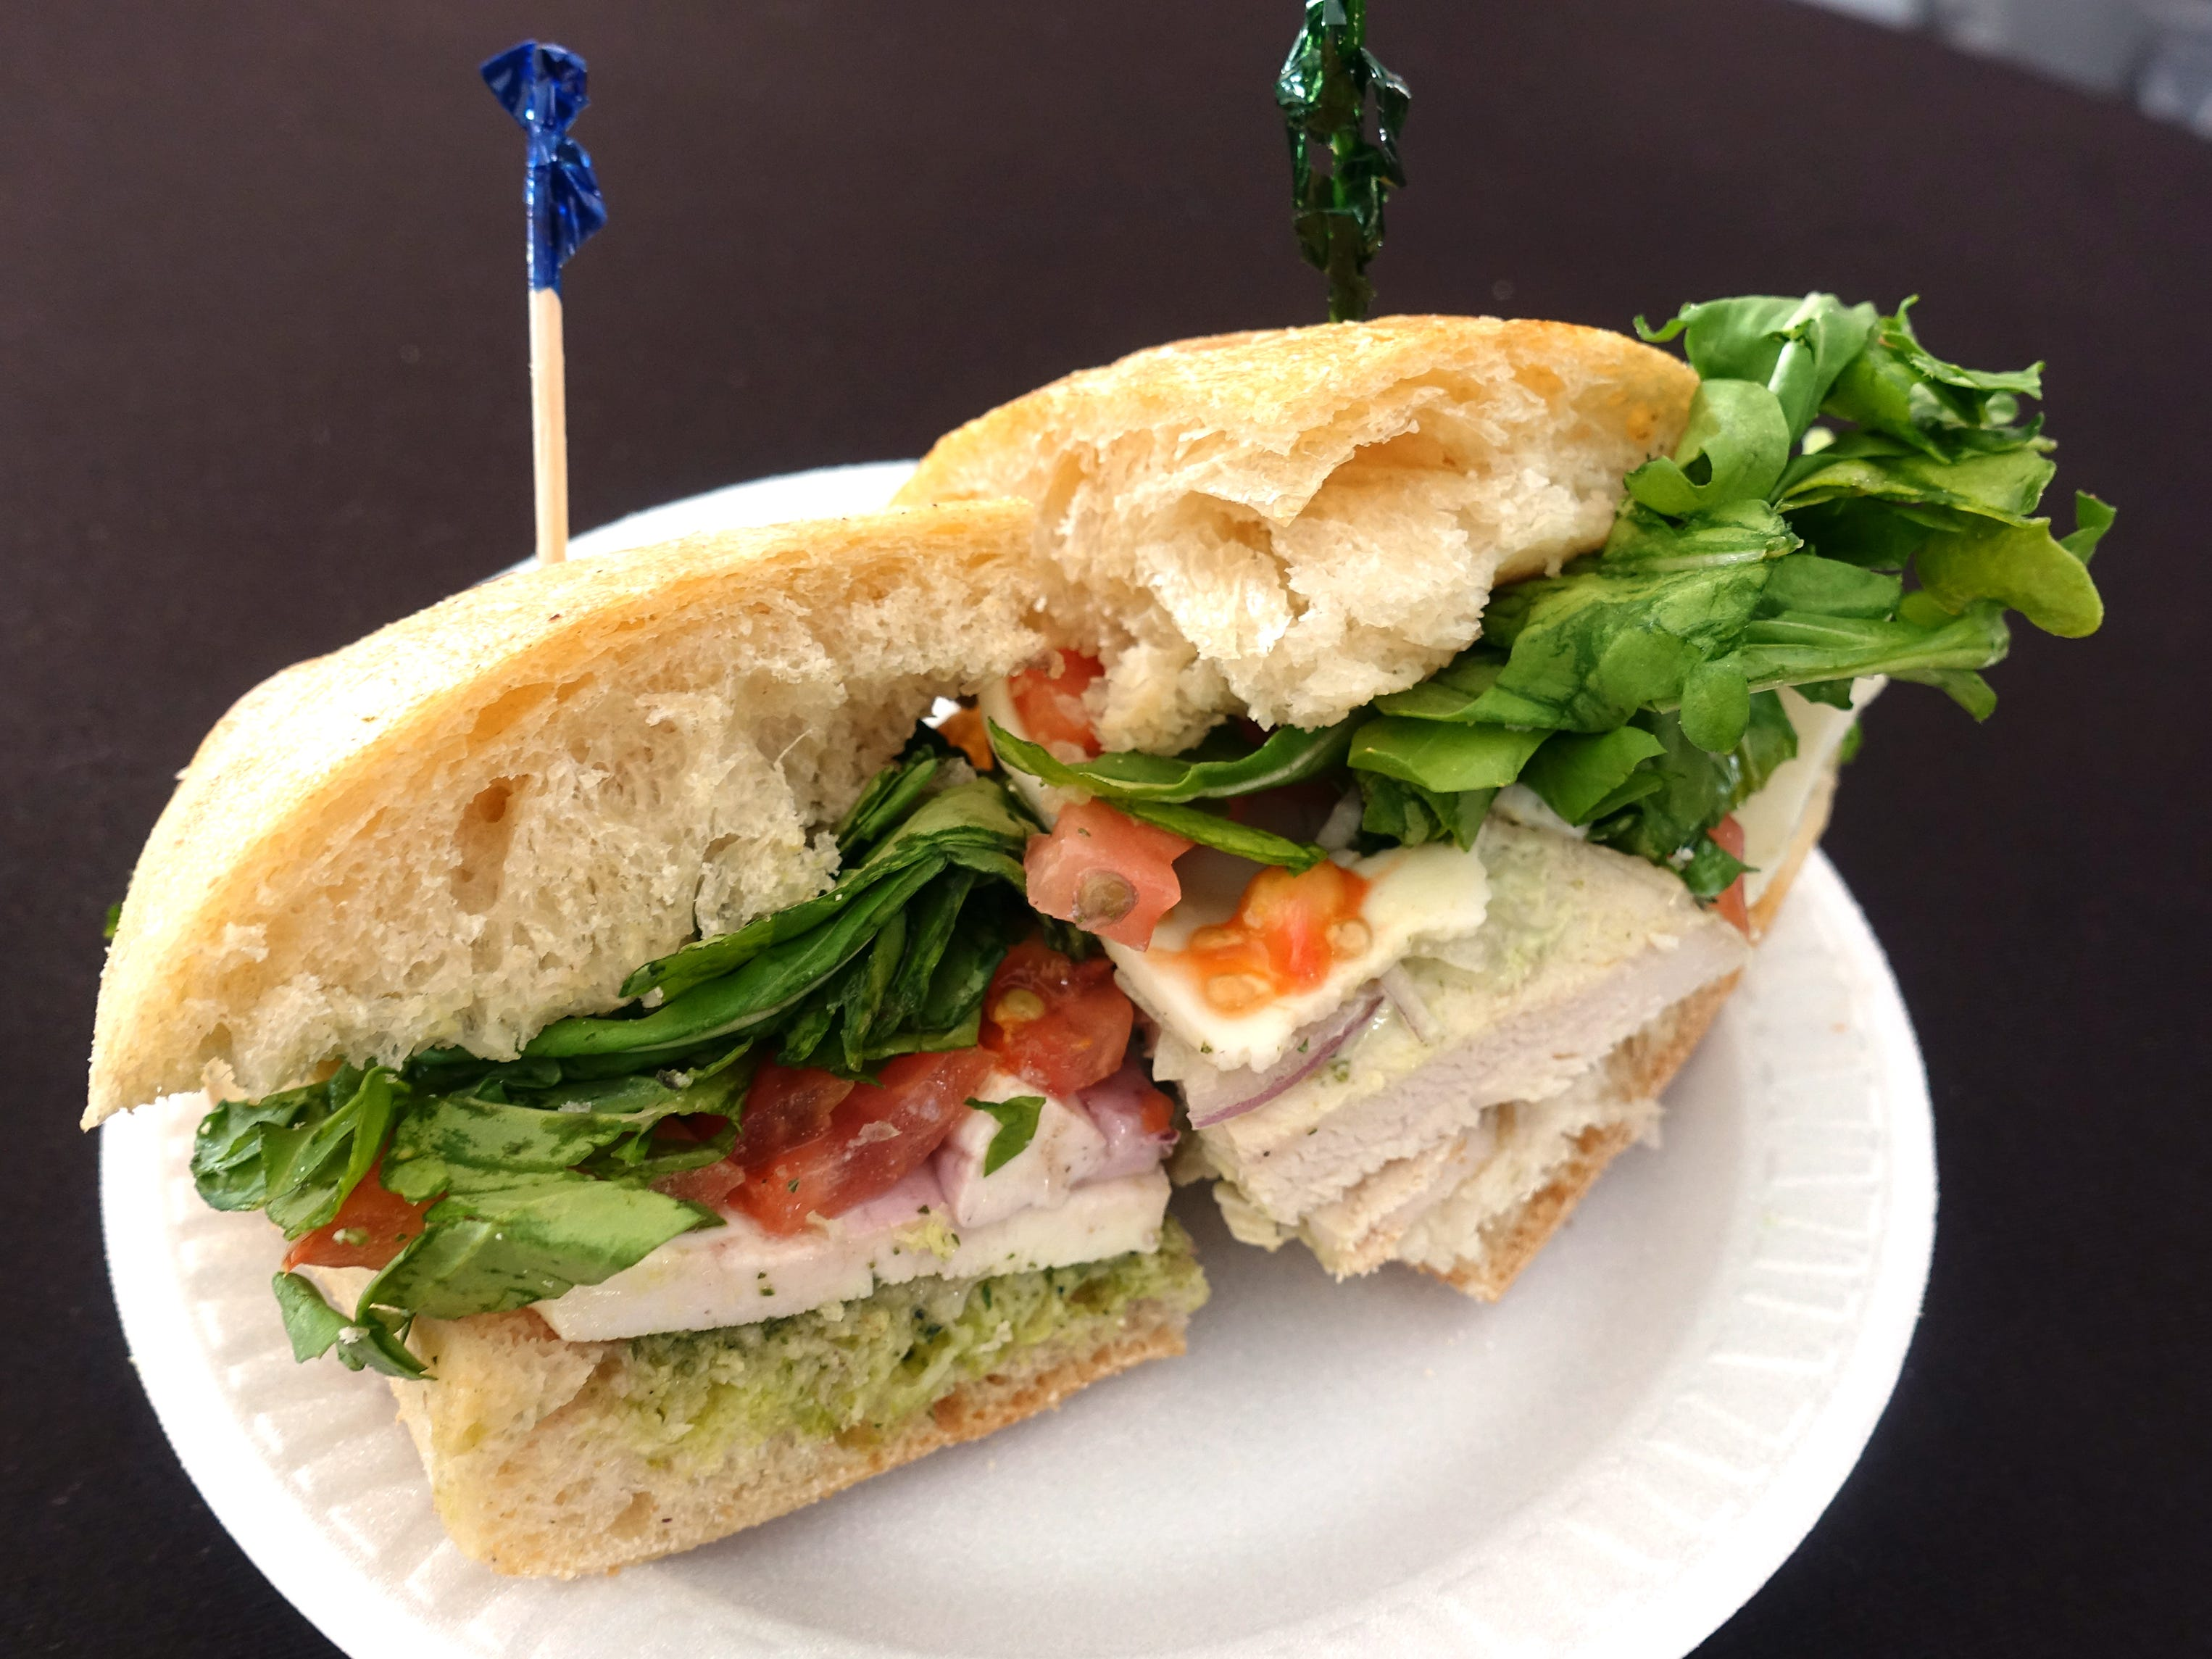 Blueberry pesto sandwich (left) and basil chicken sandwich (right) from Modern Market at azcentral Wine & Food Experience 2018 at WestWorld of Scottsdale, Sunday, Nov. 4, 2018.